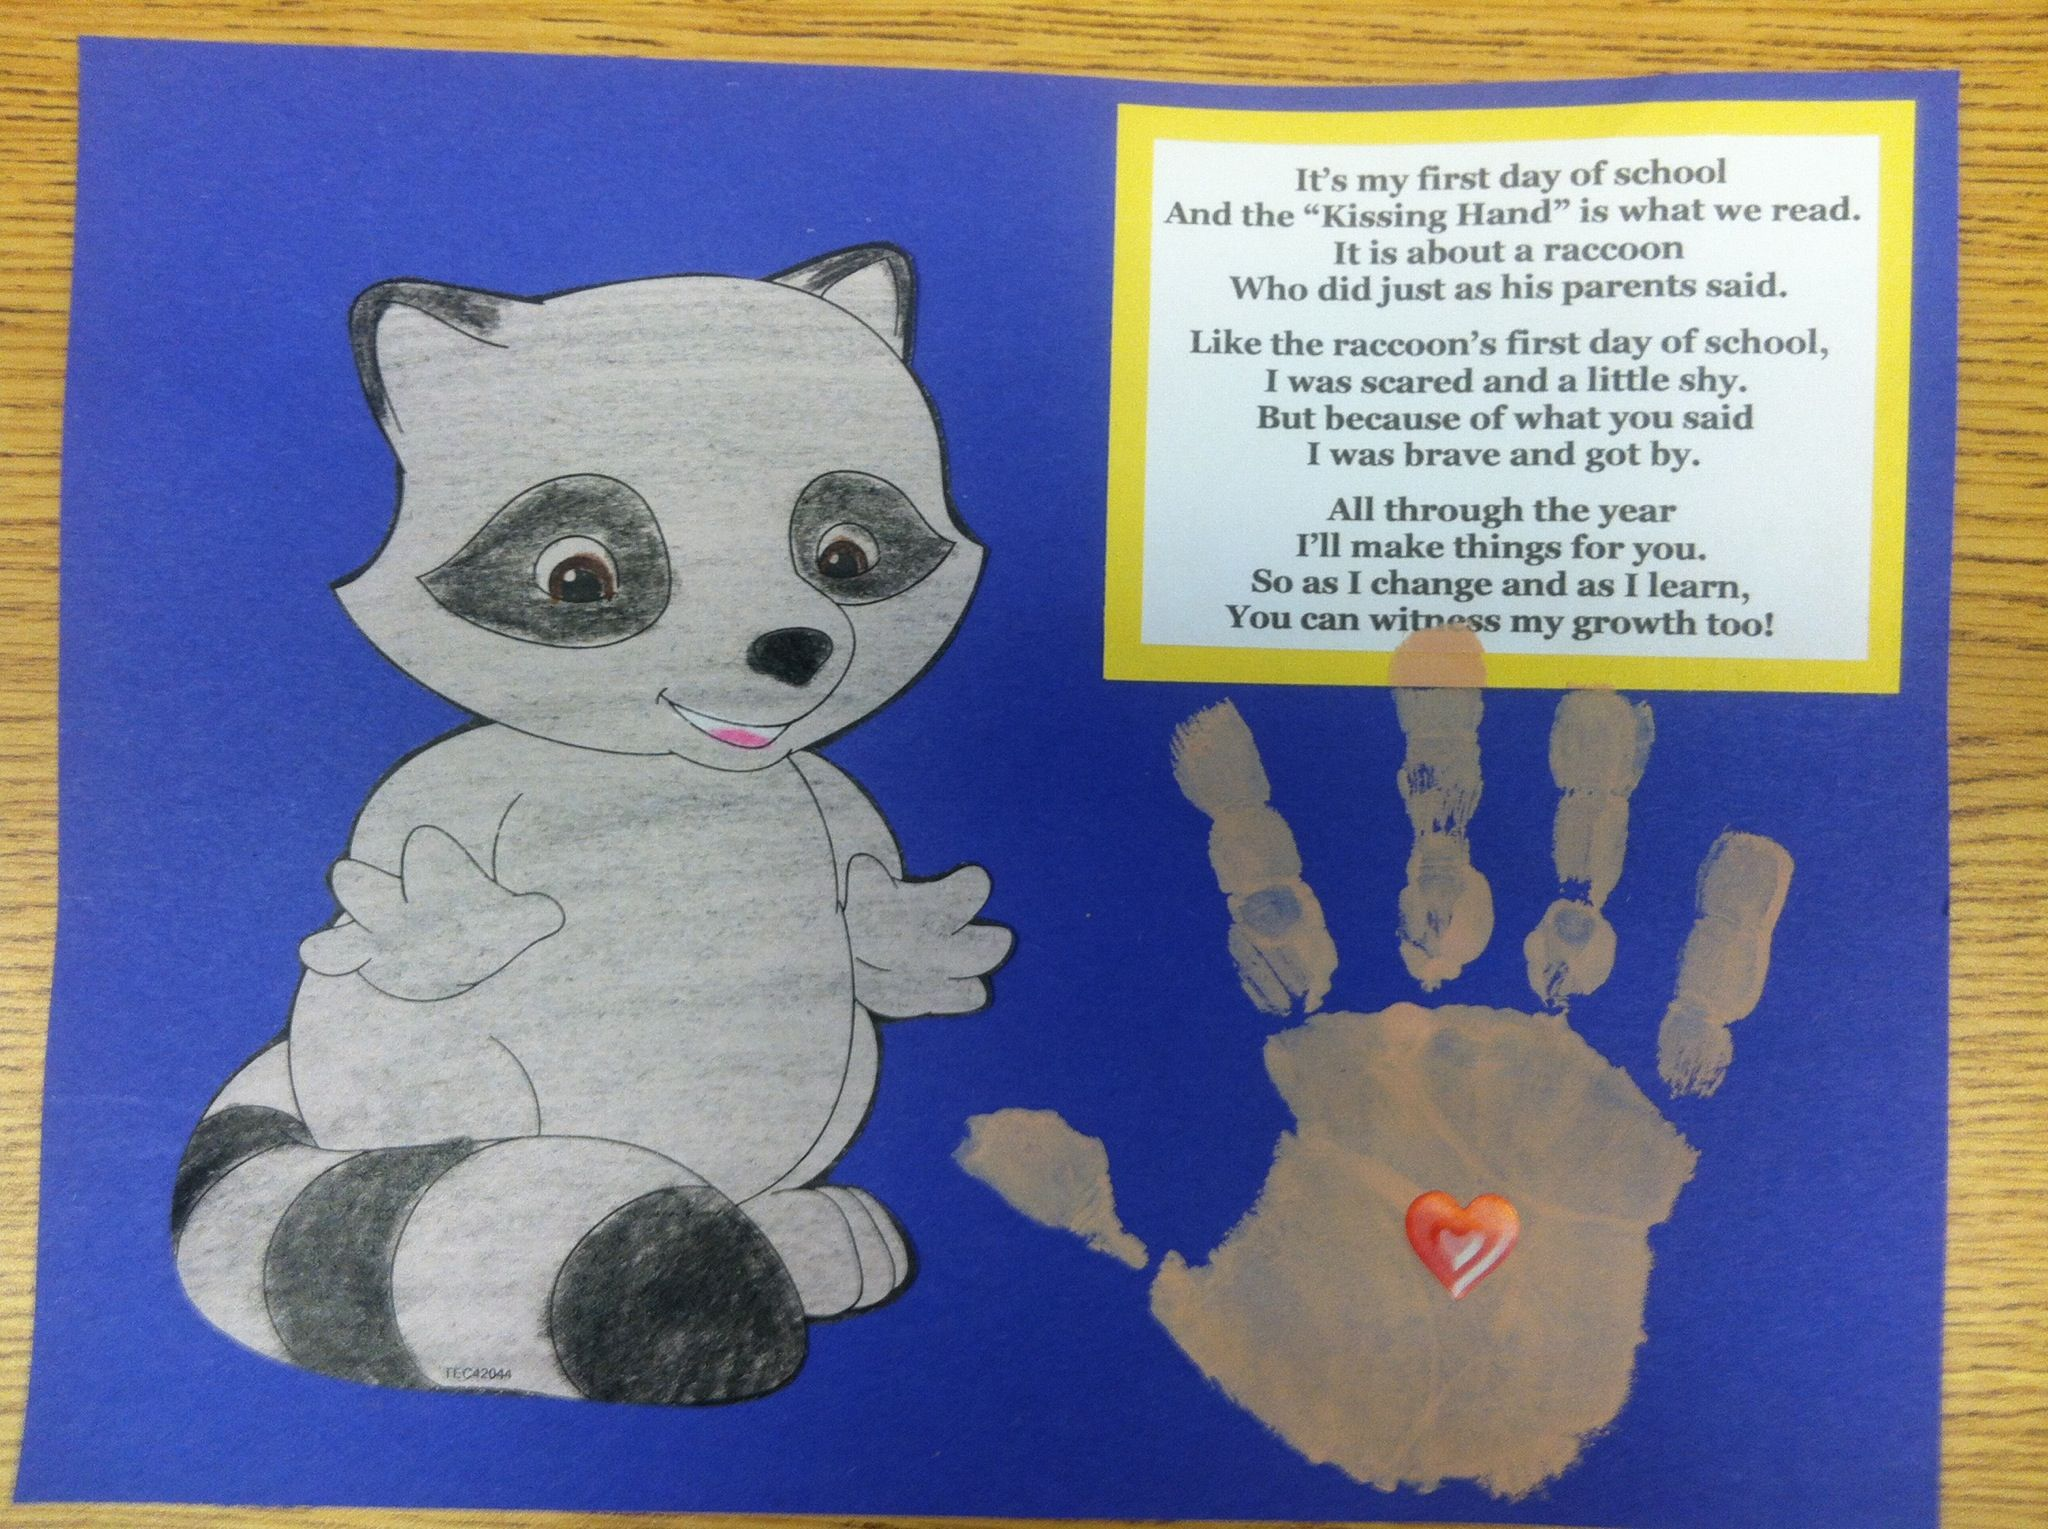 Raccoon Chester The Kissing Hand Arts Amp Crafts Project I Used Our School Colors For The